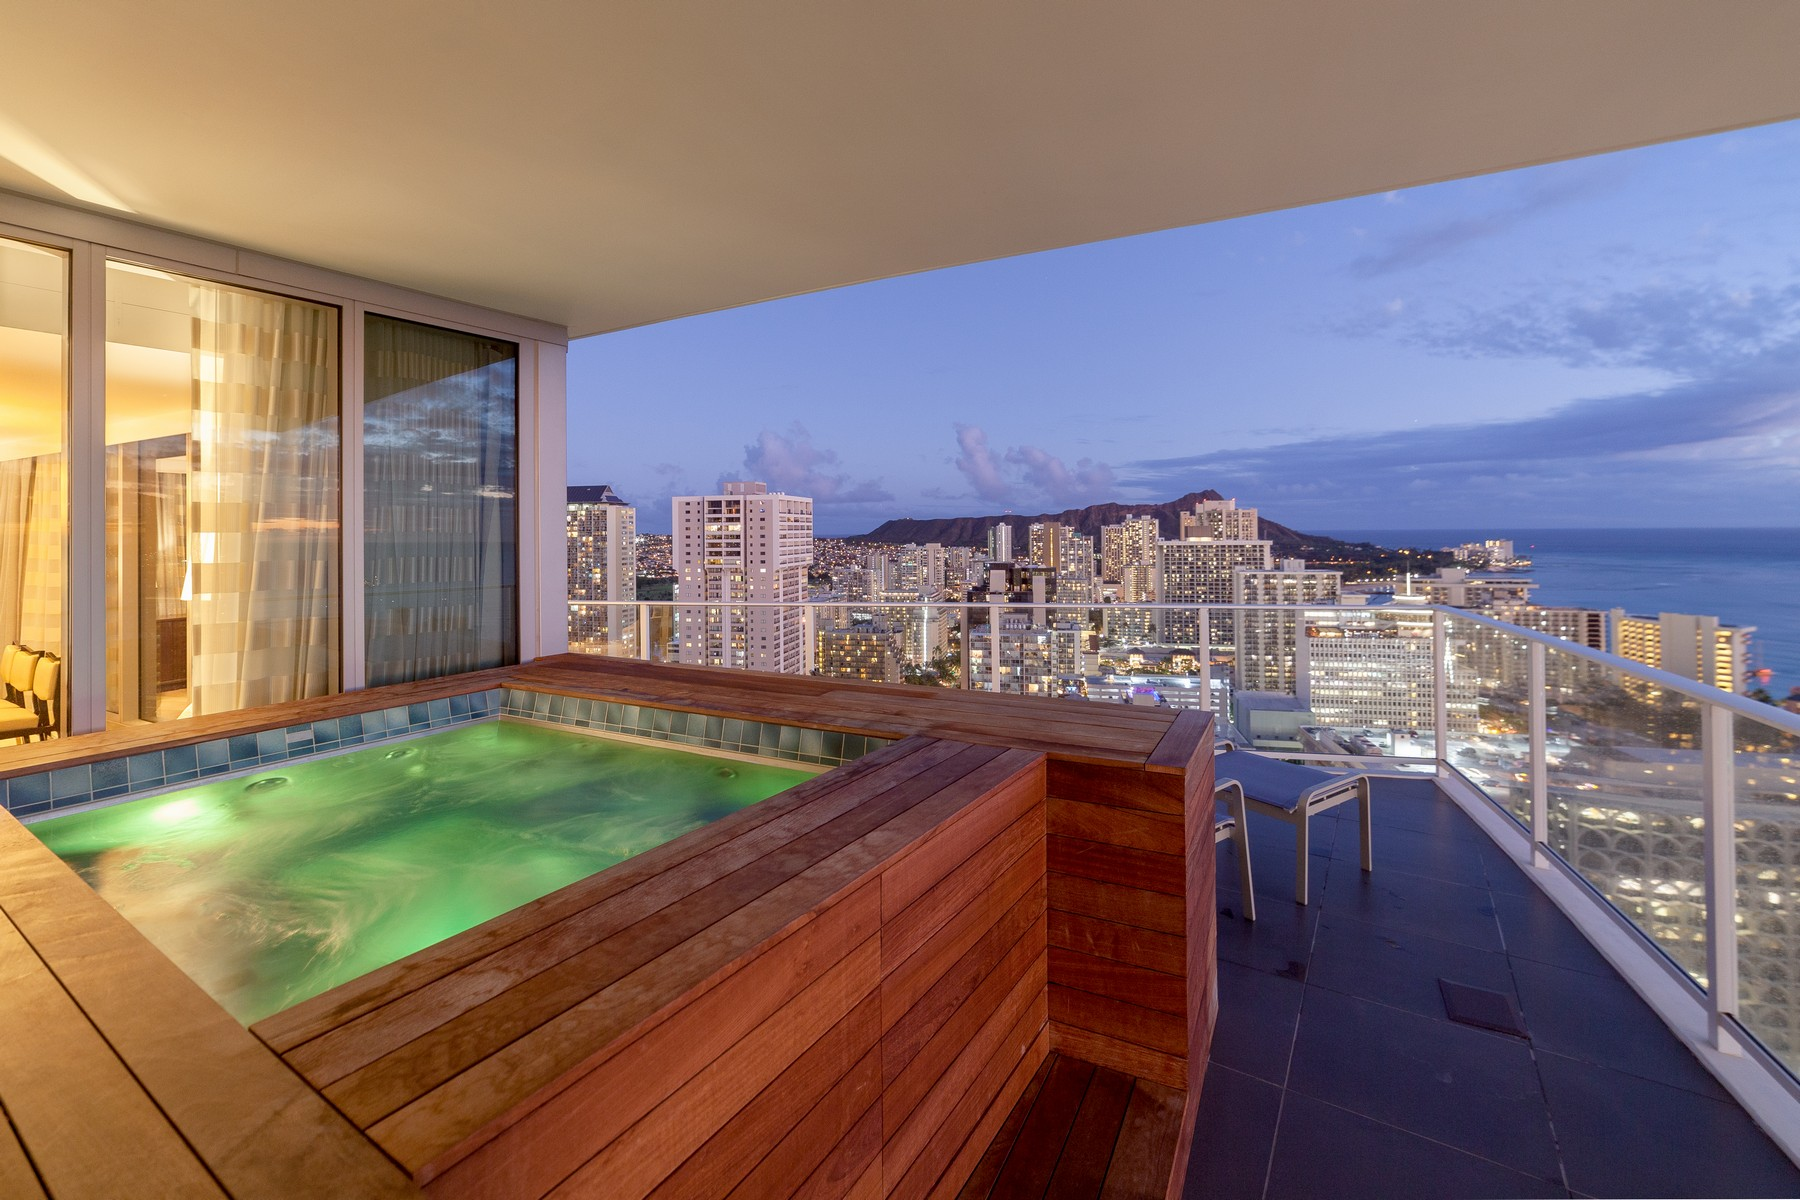 Condominiums 용 매매 에 Spectacular Ocean Views 2120 Lauula St #3506, Honolulu, 하와이 96815 미국